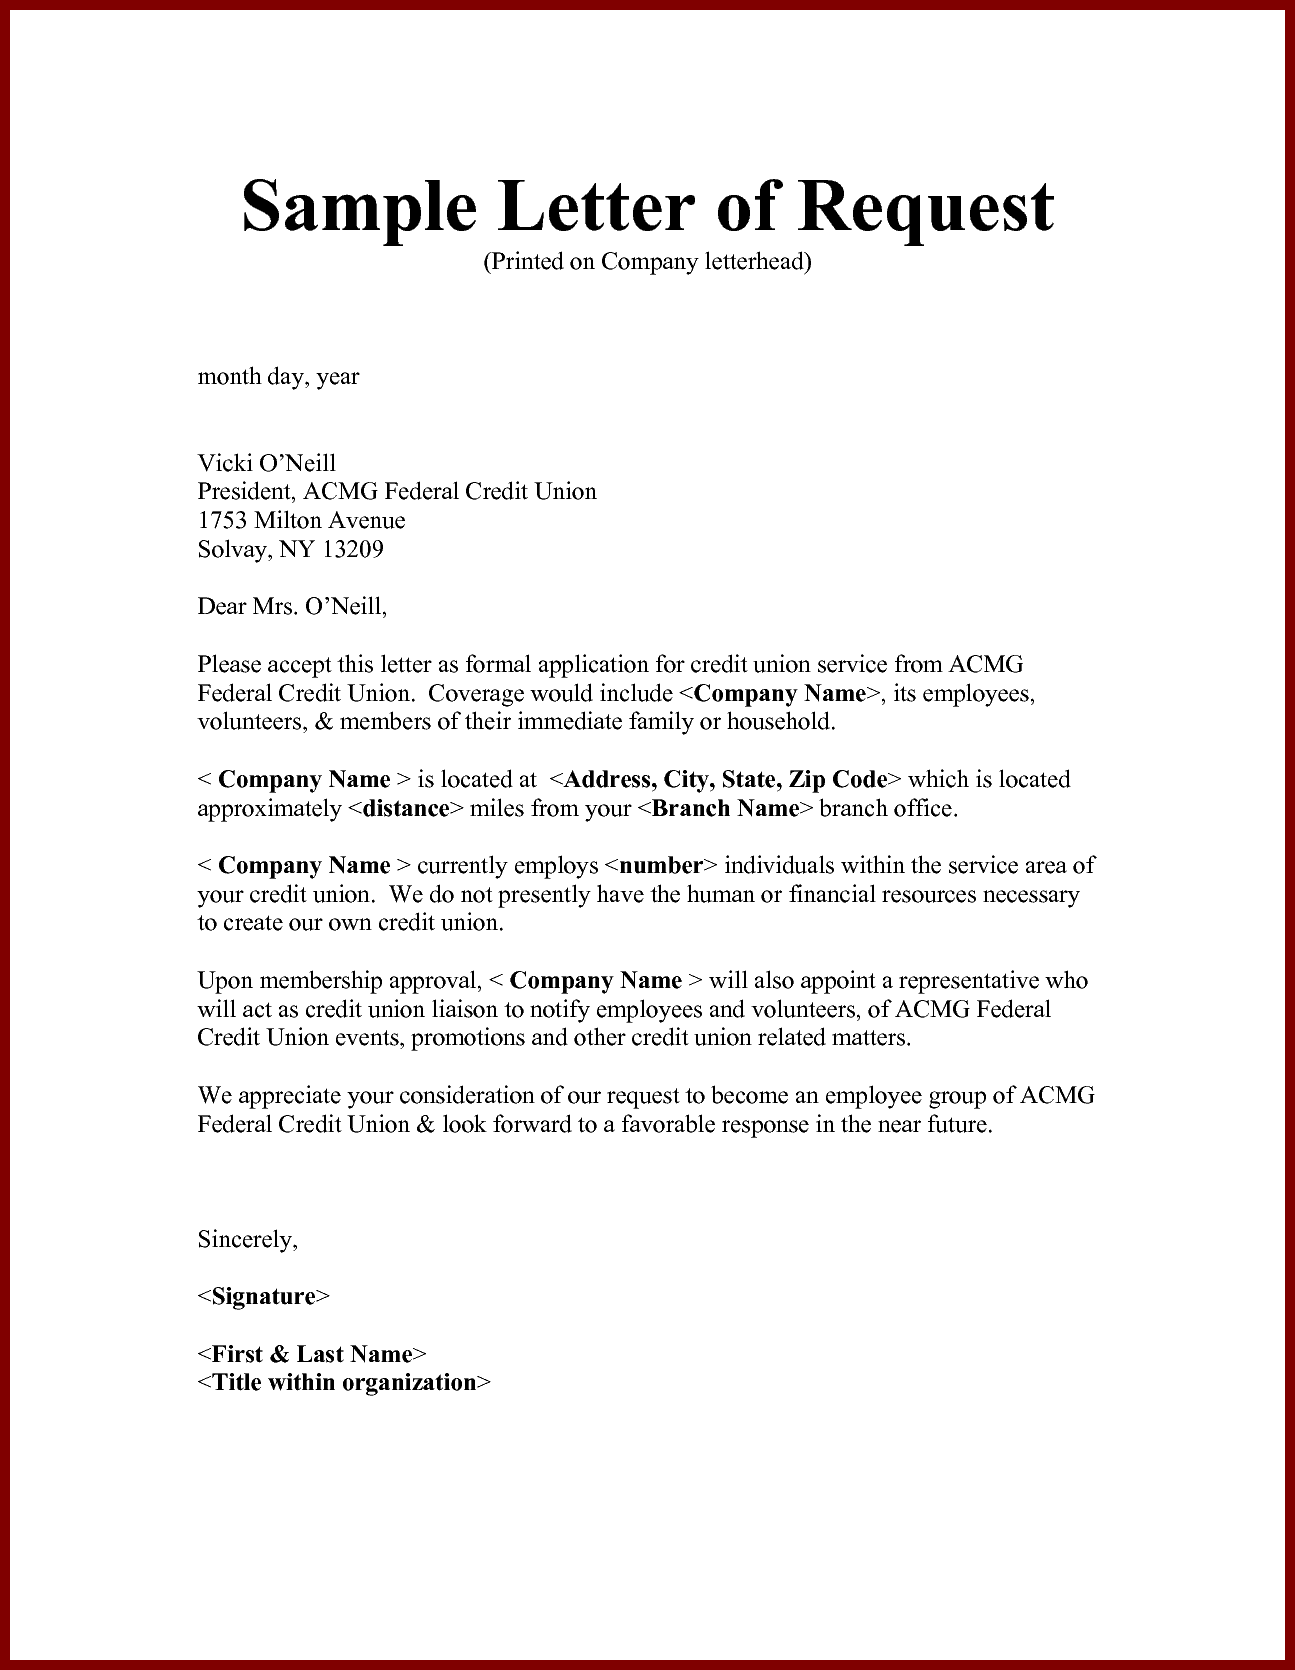 Application letter format for maternity leave college principal application letter format for maternity leave college principal thecheapjerseys Images